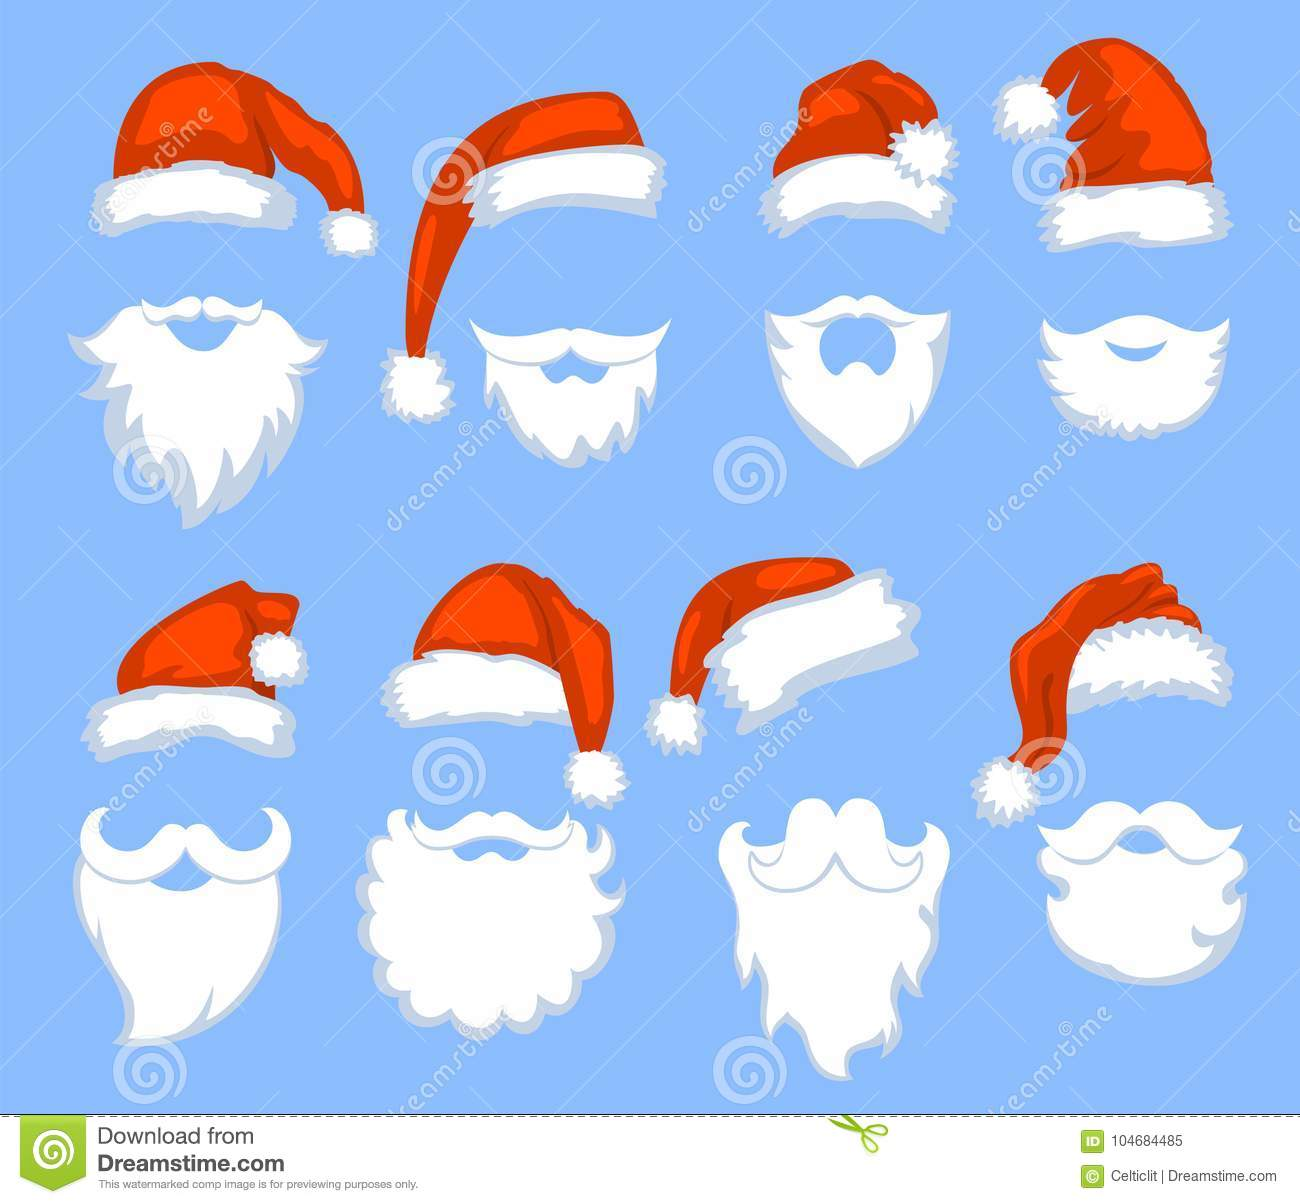 04e649e97c5 Christmas Santa Claus red hats with white moustaches and beards vector set. Santa  claus masks with beard and moustaches for xmas holiday